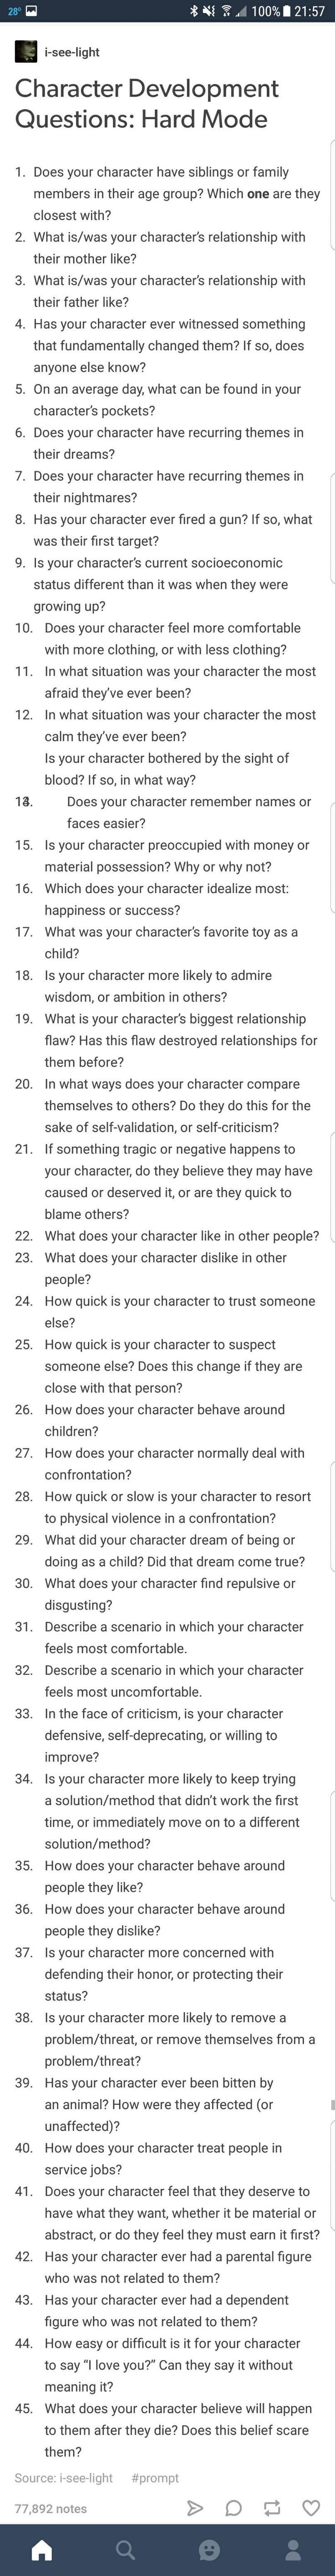 I've written literally one chapter of the book I'm starting, and I can answer almost all of these questions for my protagonist. This is actually quite validating; I guess I've fleshed out my character pretty well.